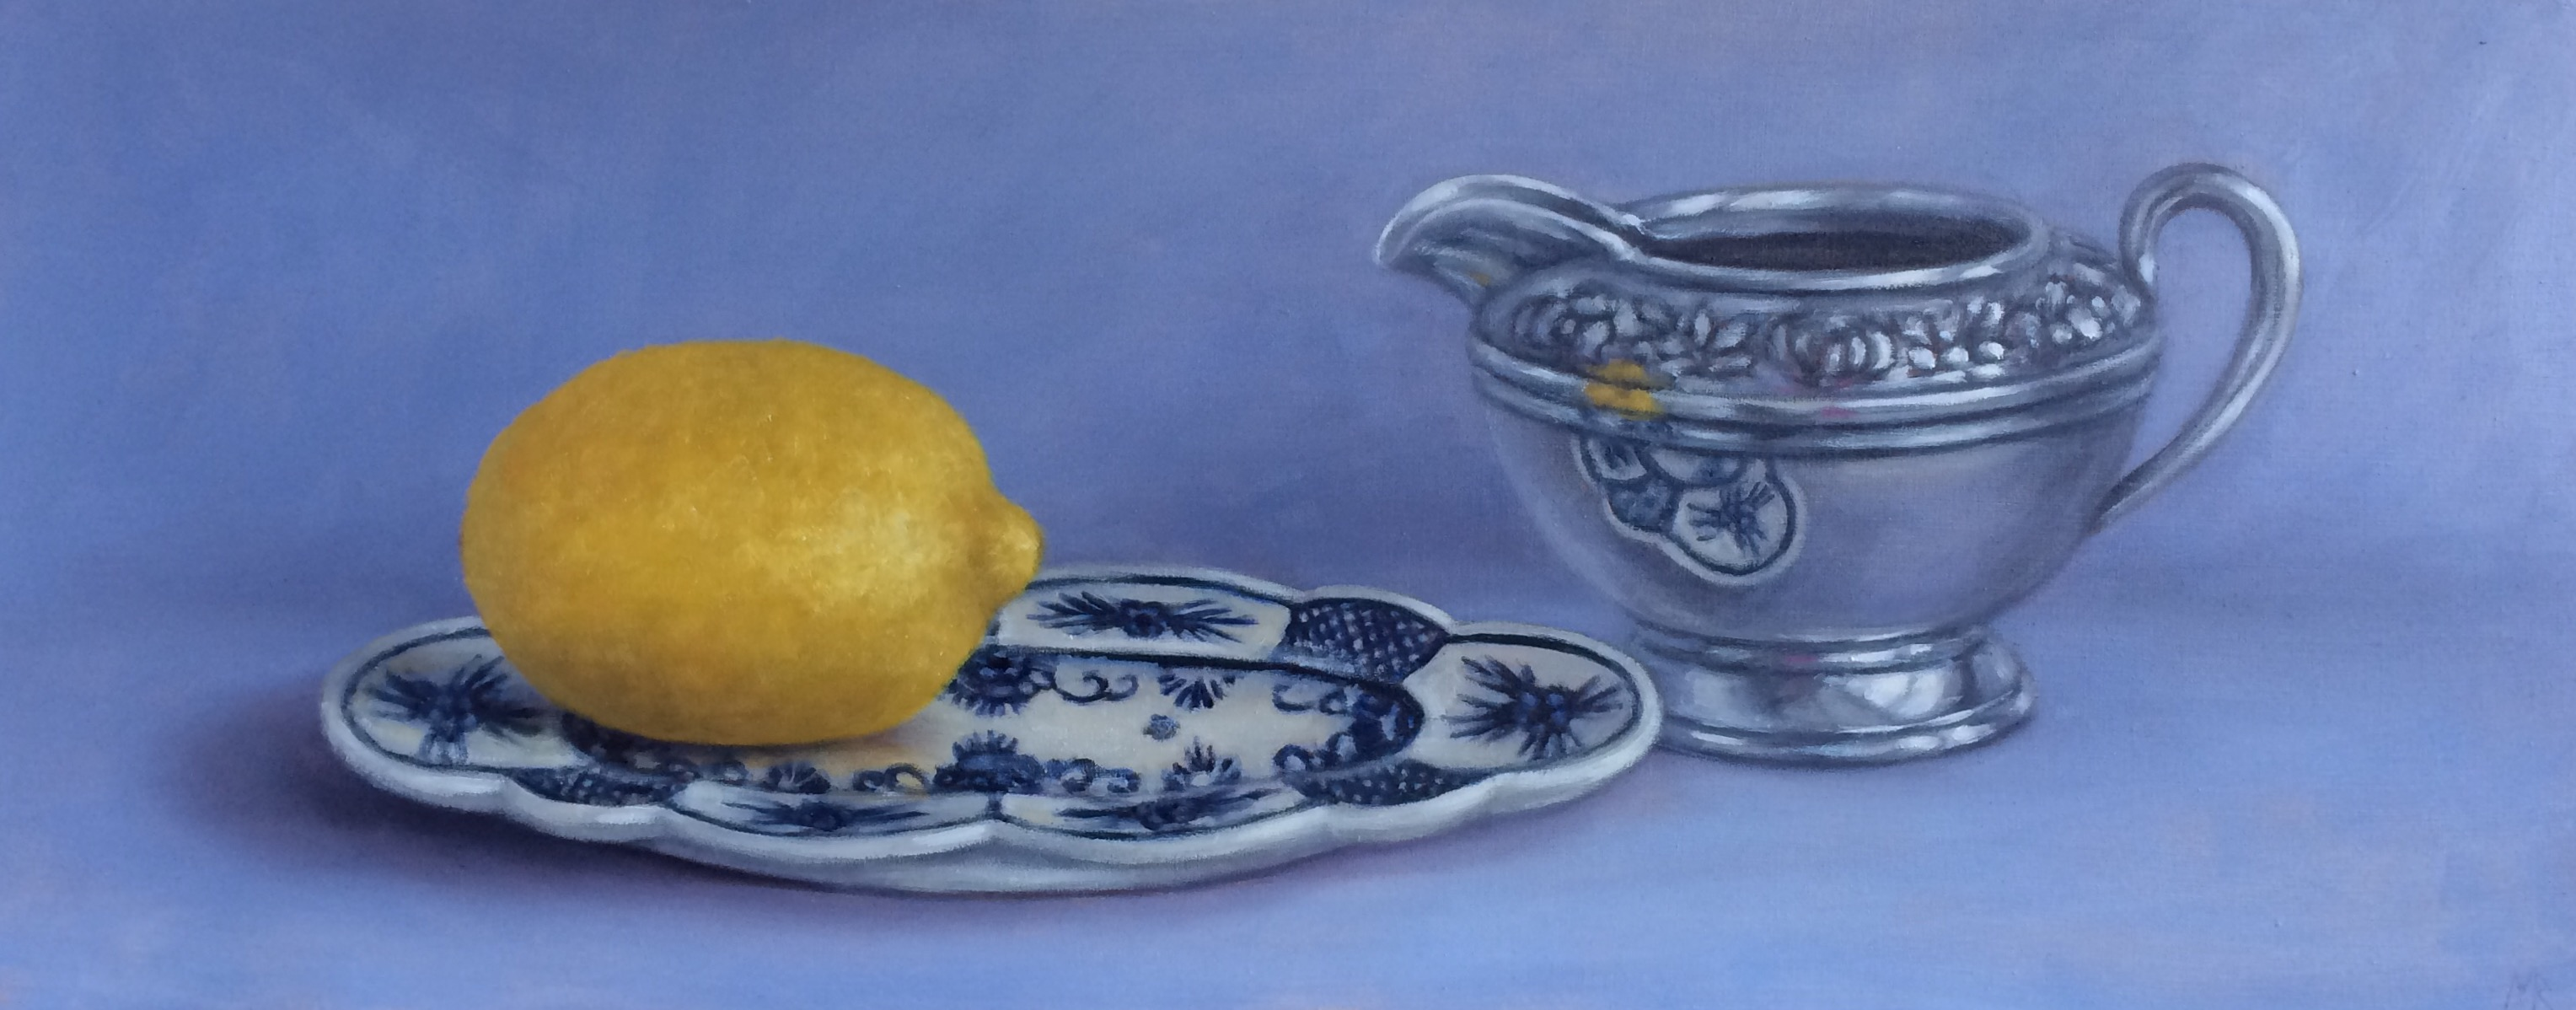 Reflections of Lemon on Blue